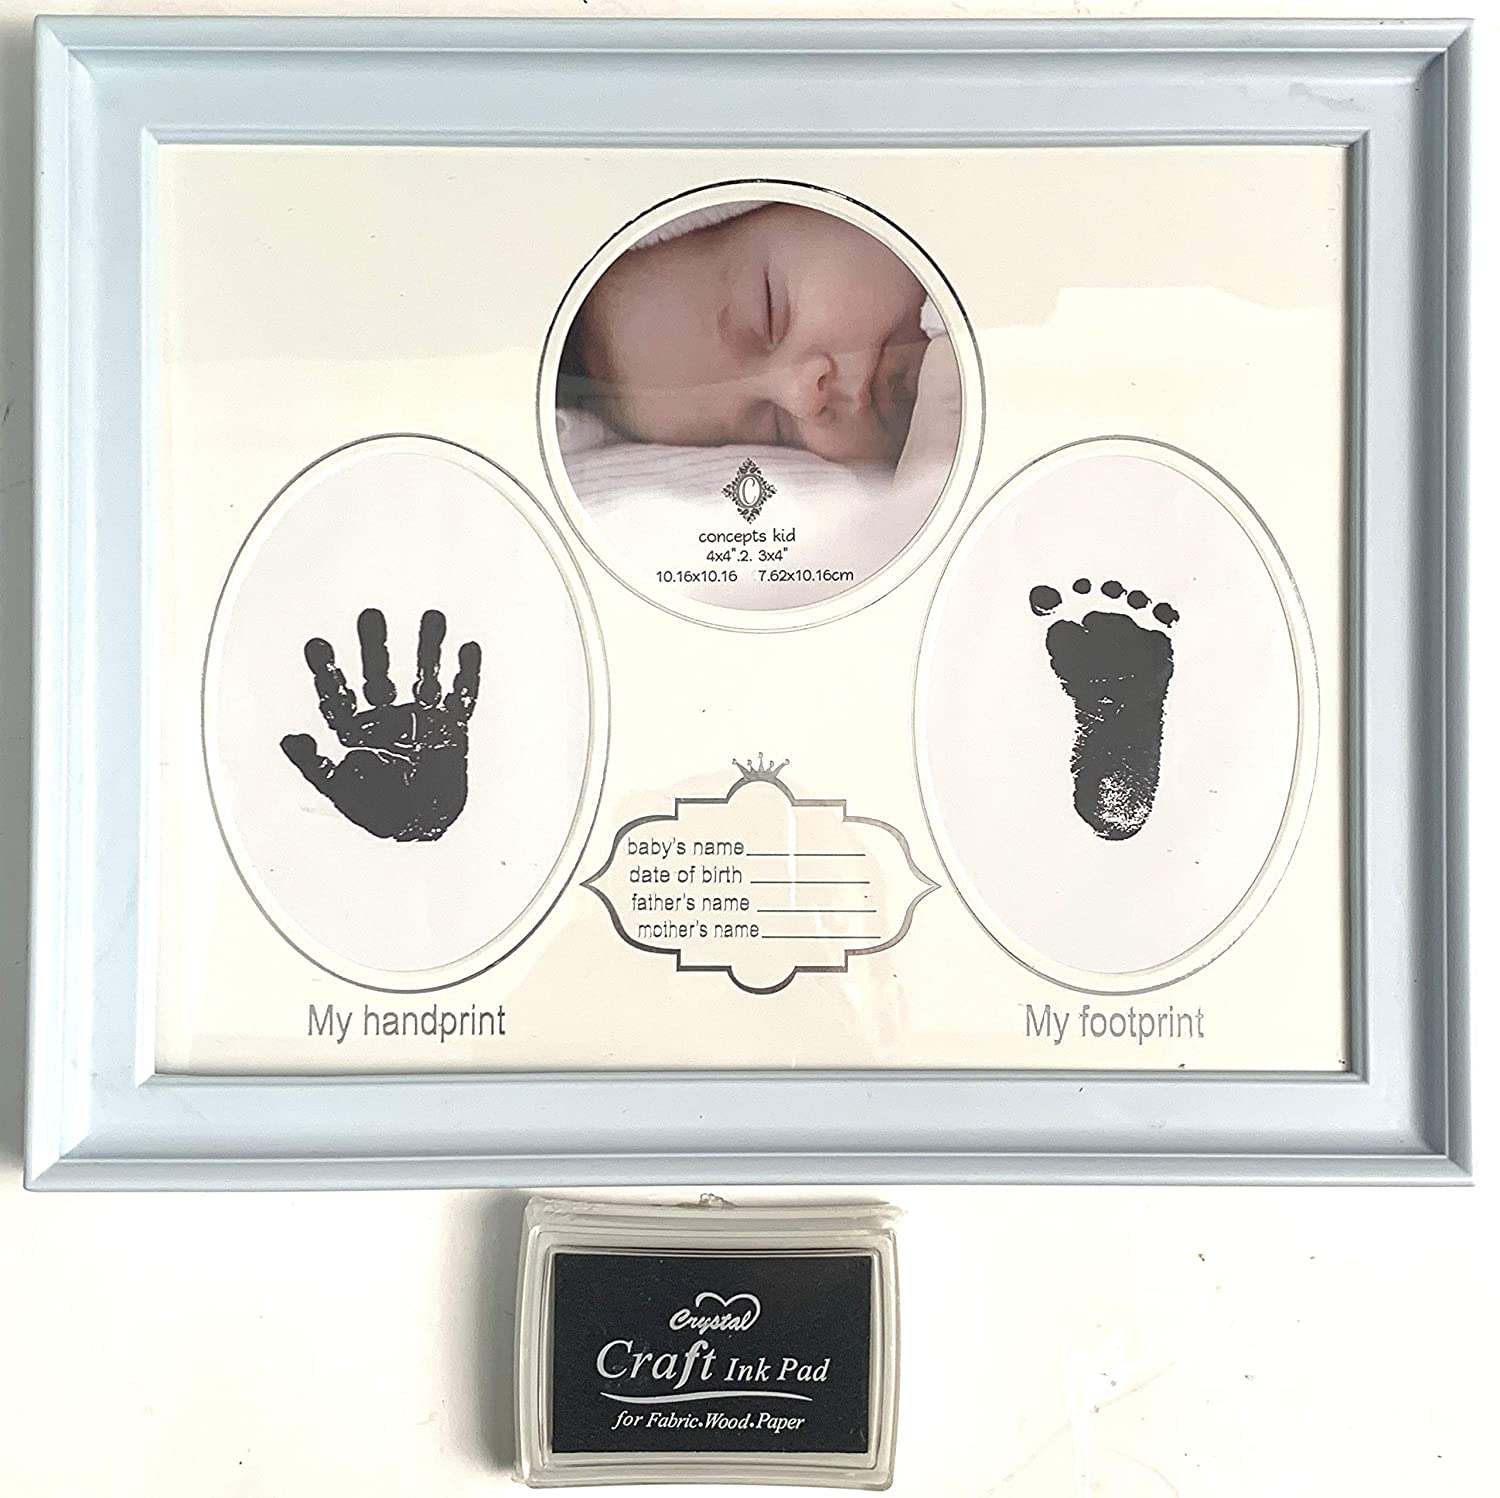 Concept in Time Babyprints Newborn Keepsake Baby Handprint and Footprint Photo Frame Kit with an Included Clean-Touch Ink Pad to Create Baby's Prints, A Perfect Baby Shower (Blue)